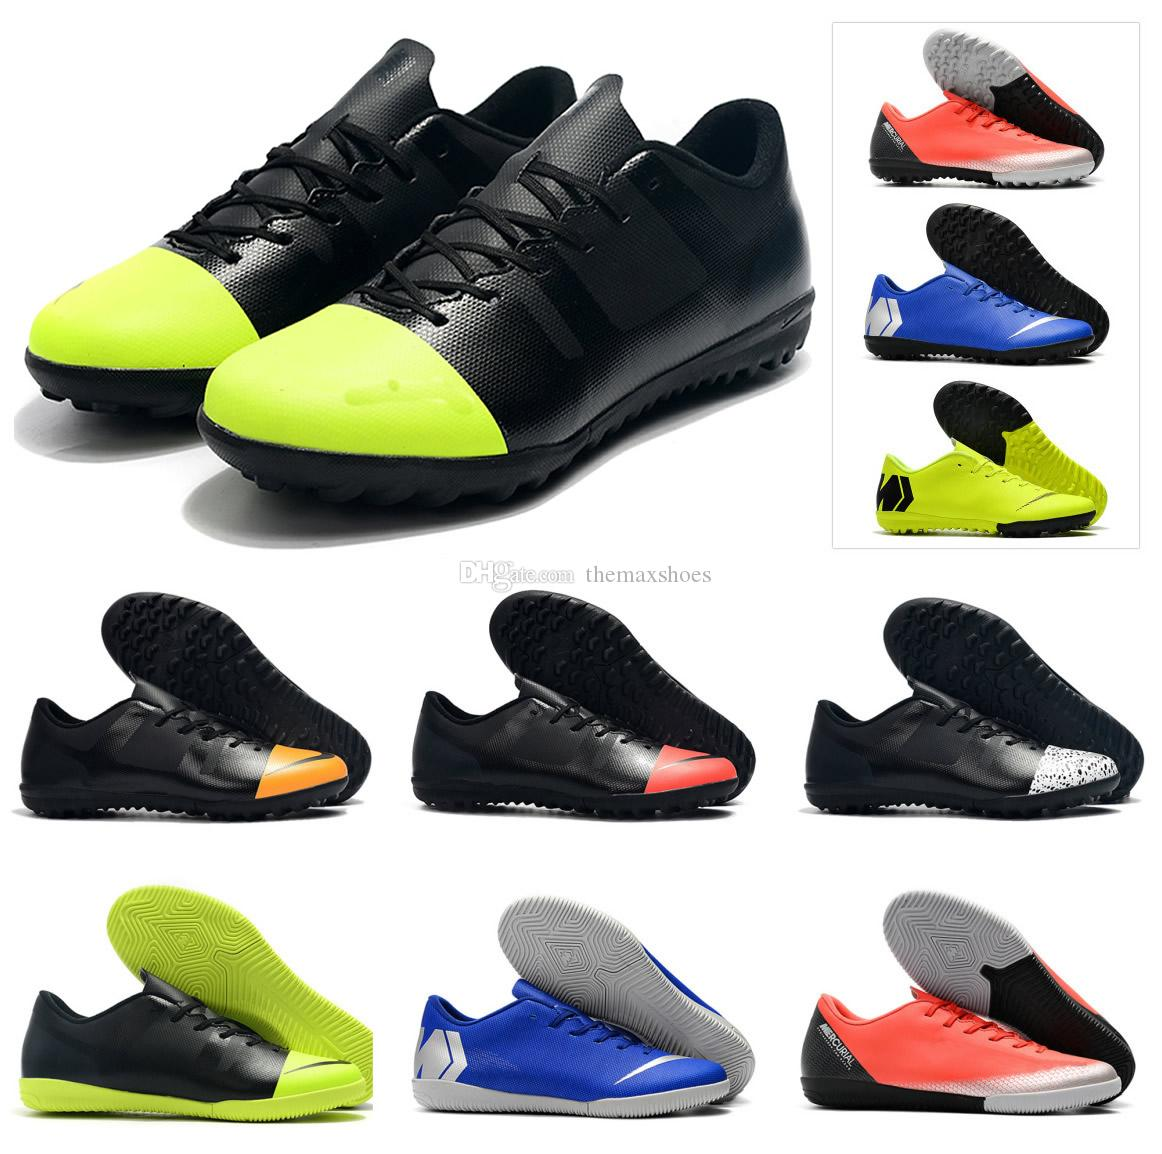 NEW Mens Mercurial VaporX 12 Club XII IC TF Turf Indoor Women Boys CR7  Ronaldo Neymar Low Ankle Football Soccer Shoes Cleats Size 36 45 UK 2019  From ... 1345c9cc5